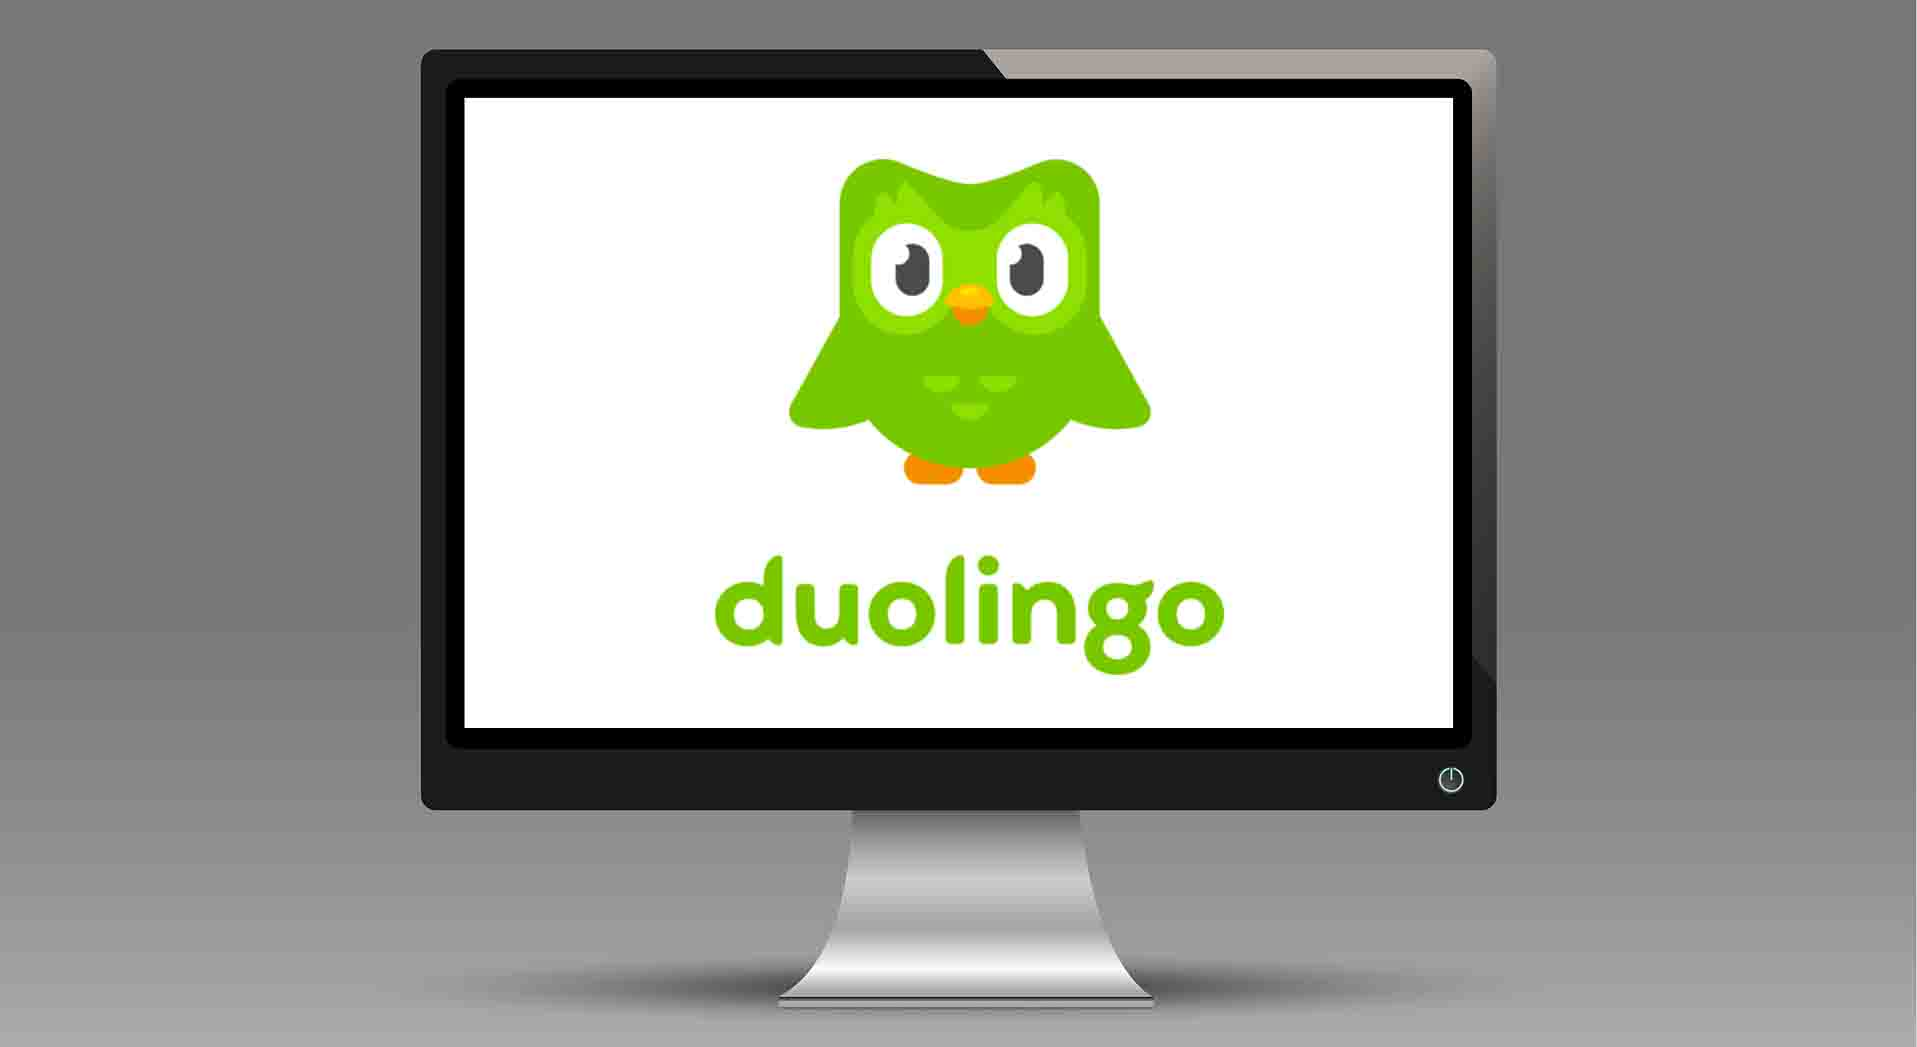 How to Download Duolingo For PC